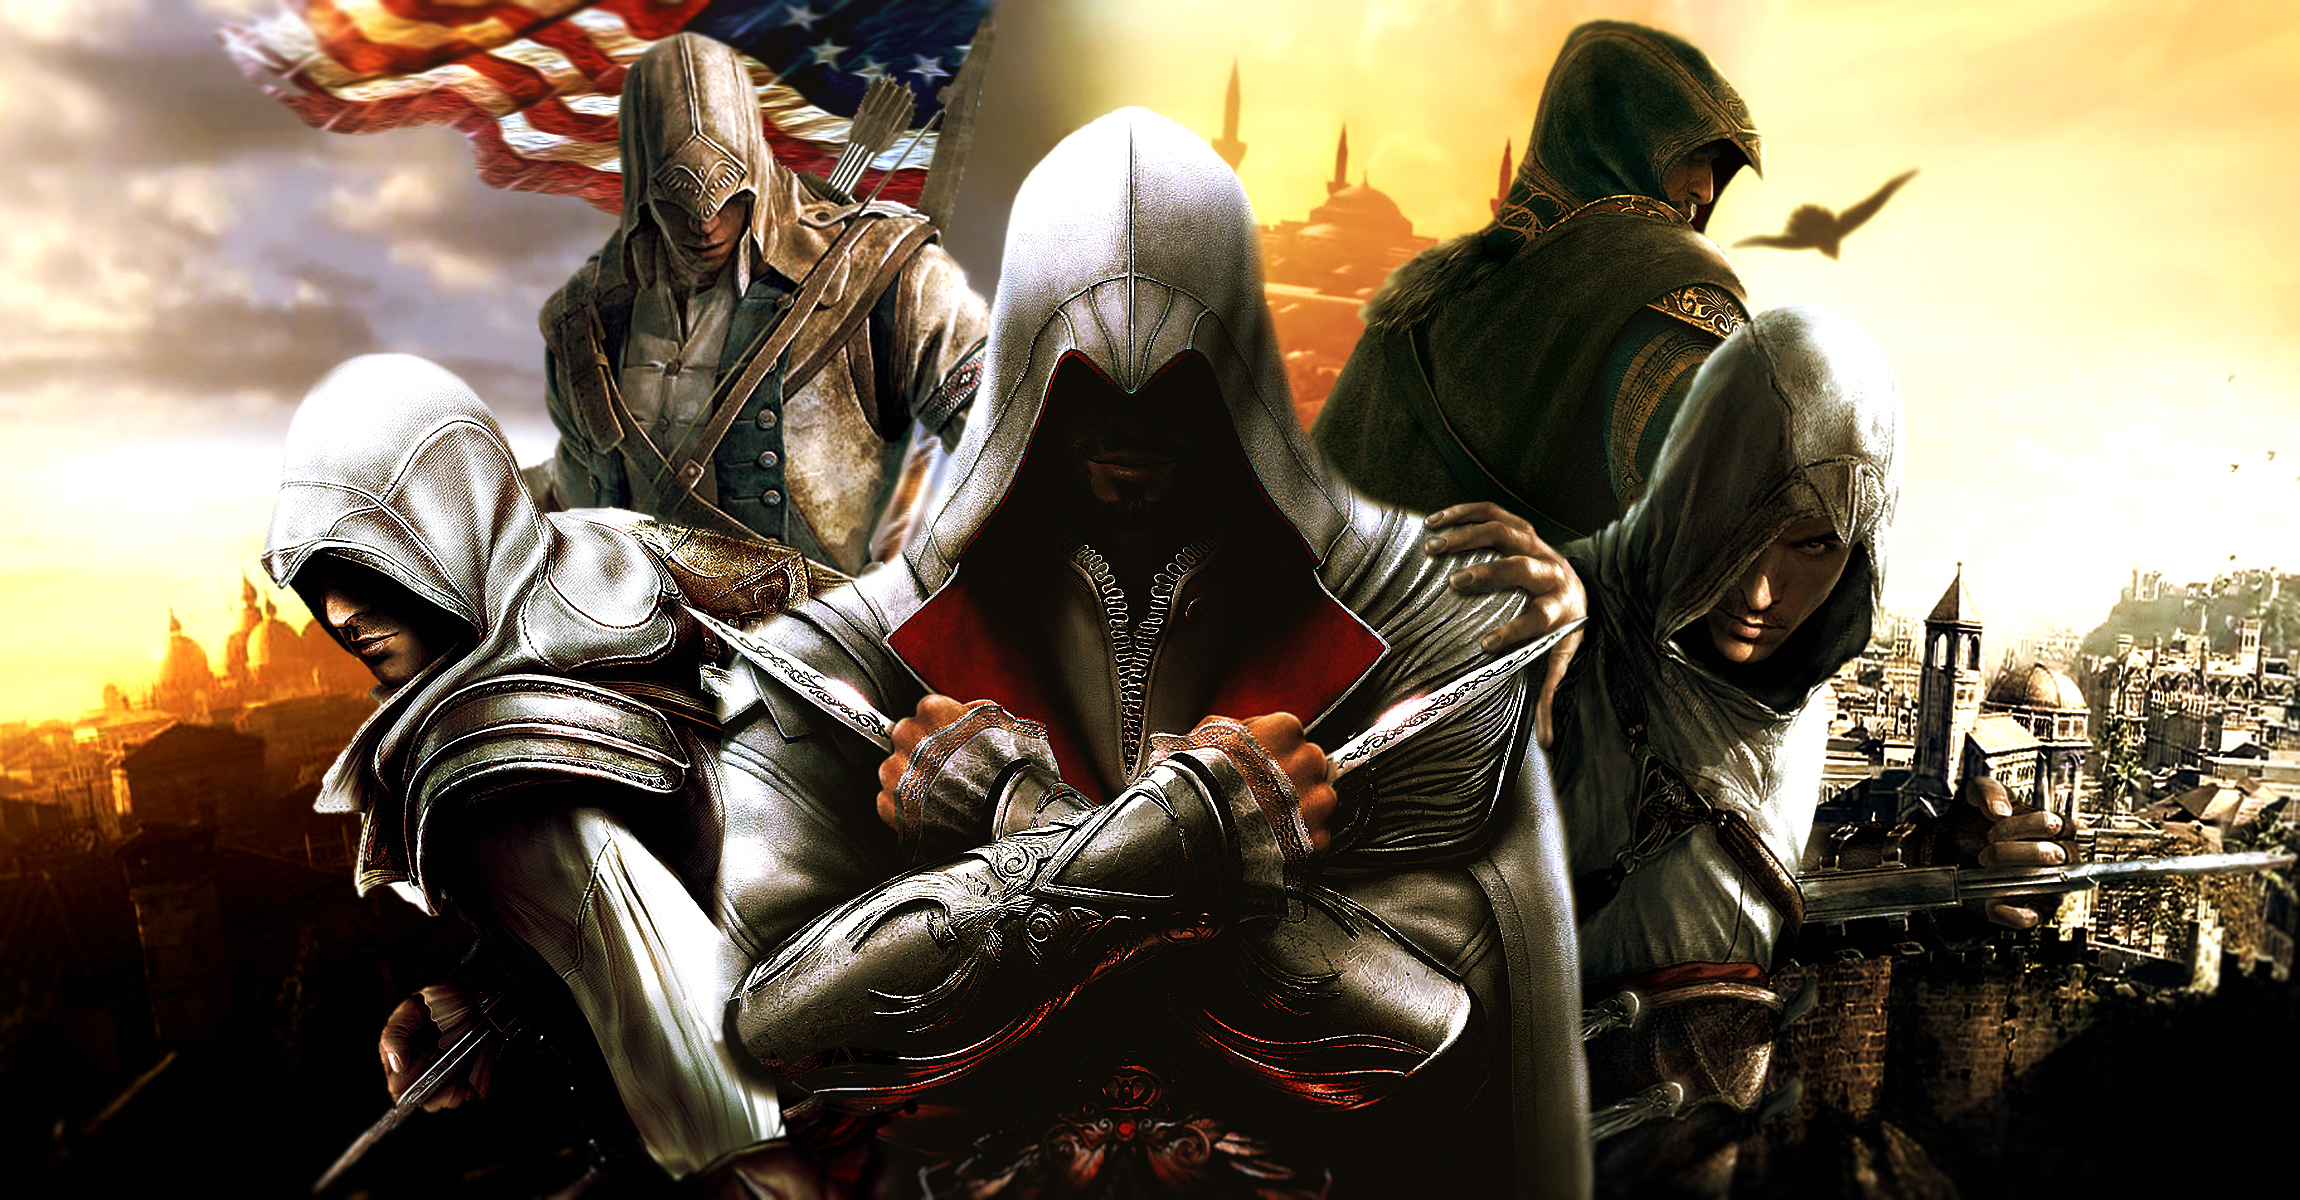 Assassins Creed Wallpaper Windows 7